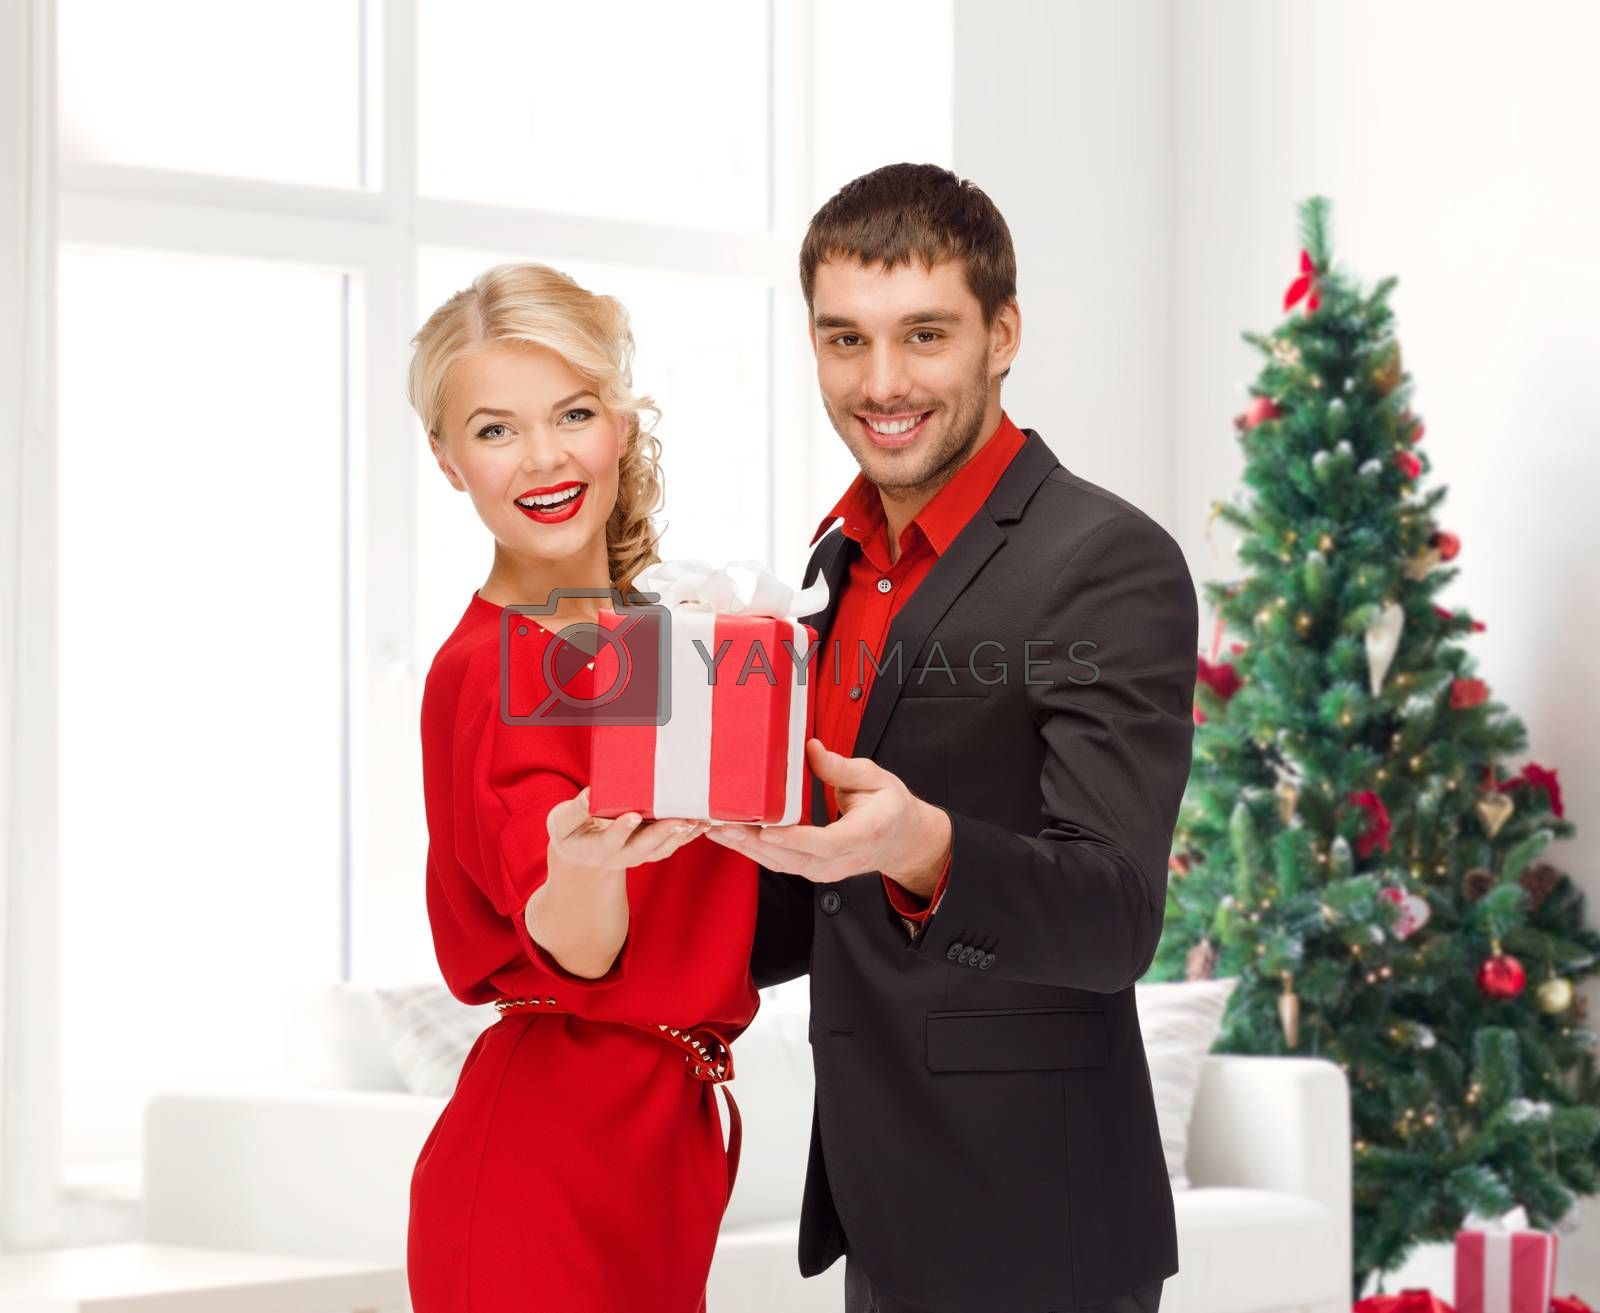 christmas, holidays, valentine's day, celebration and people concept - smiling man and woman with present over living room and christmas tree background